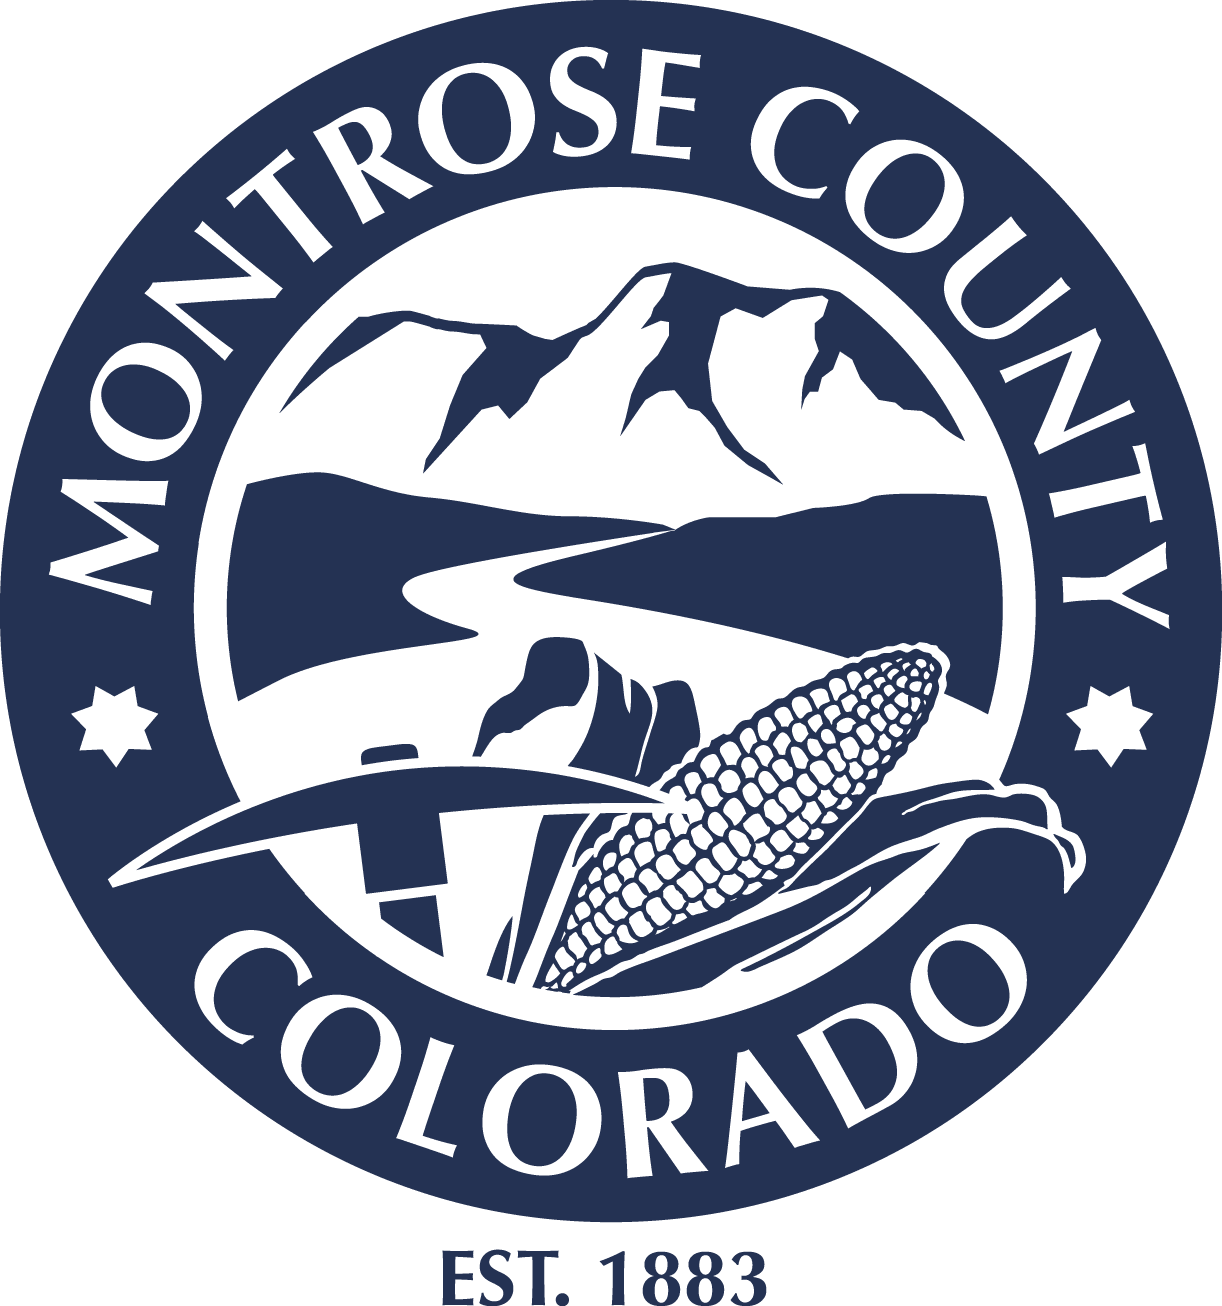 Montrose County Official Website